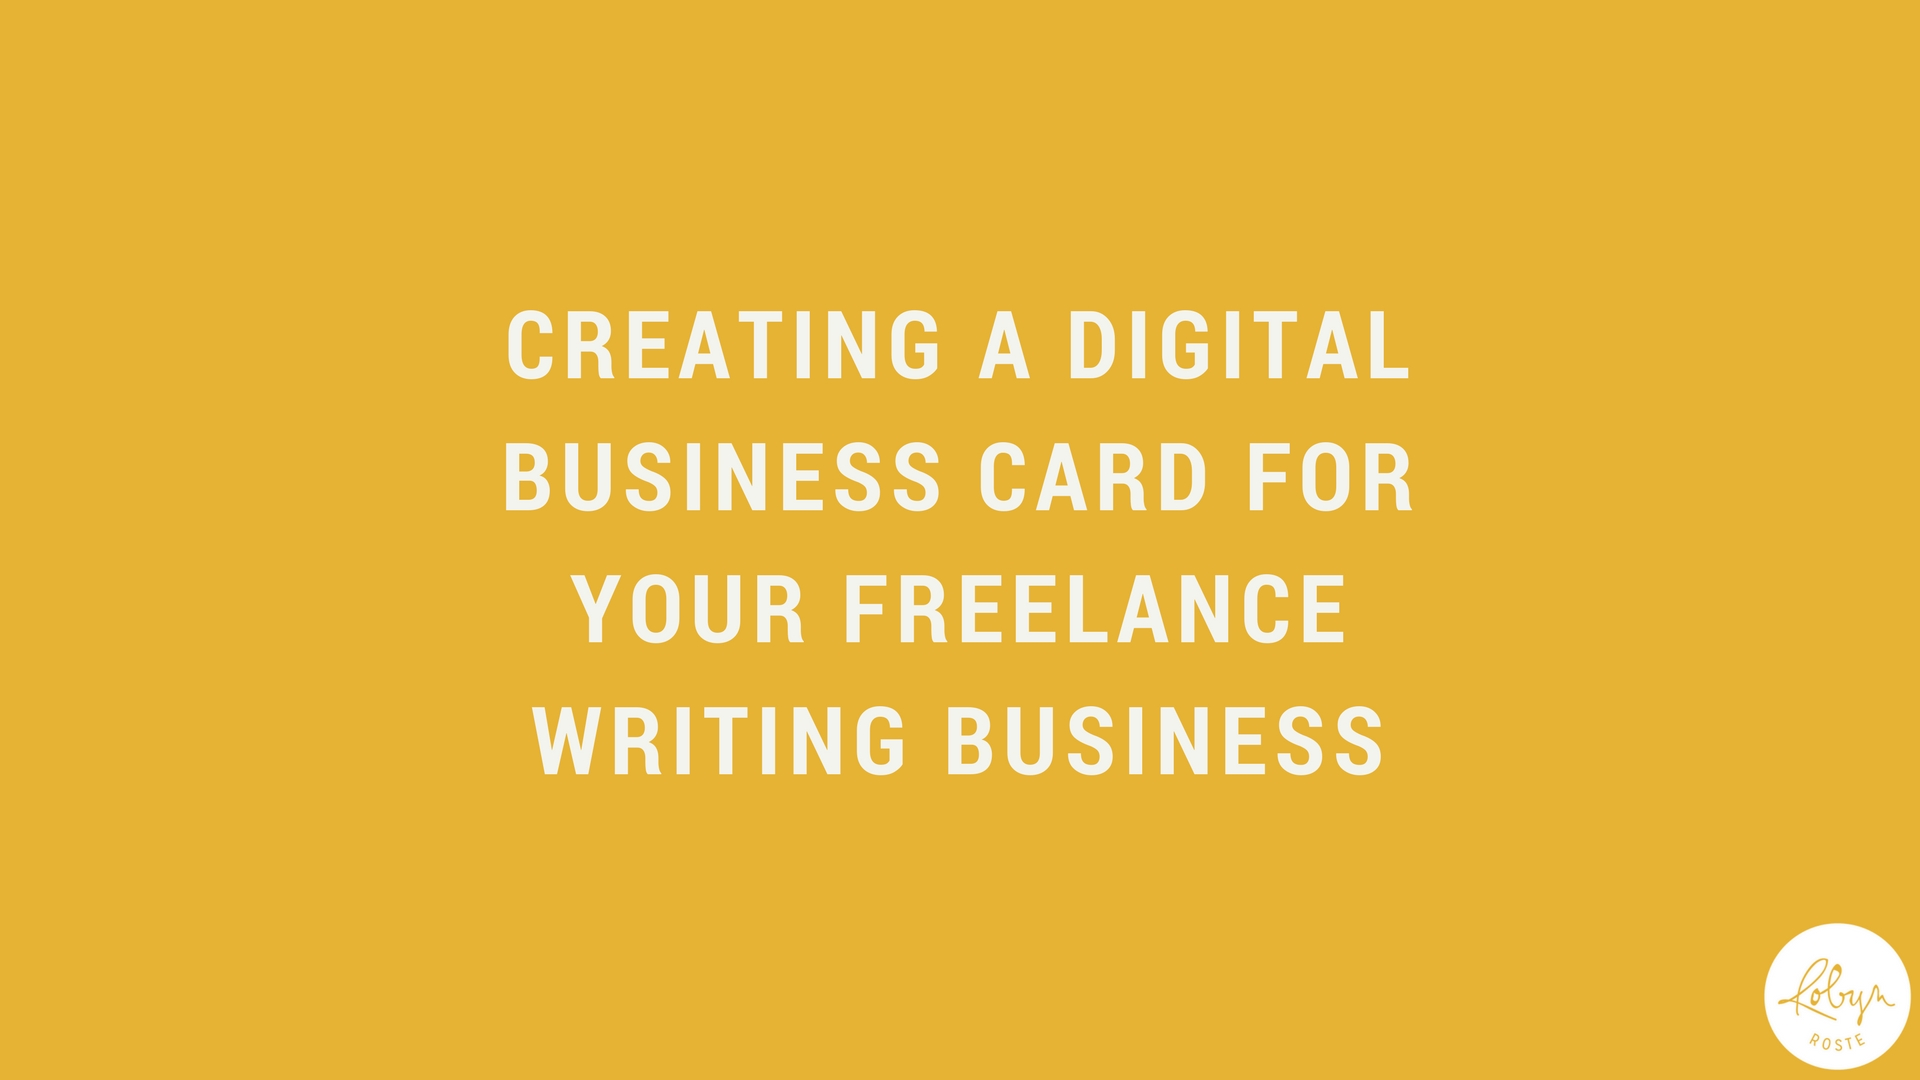 Creating a digital business card for your freelance writing business